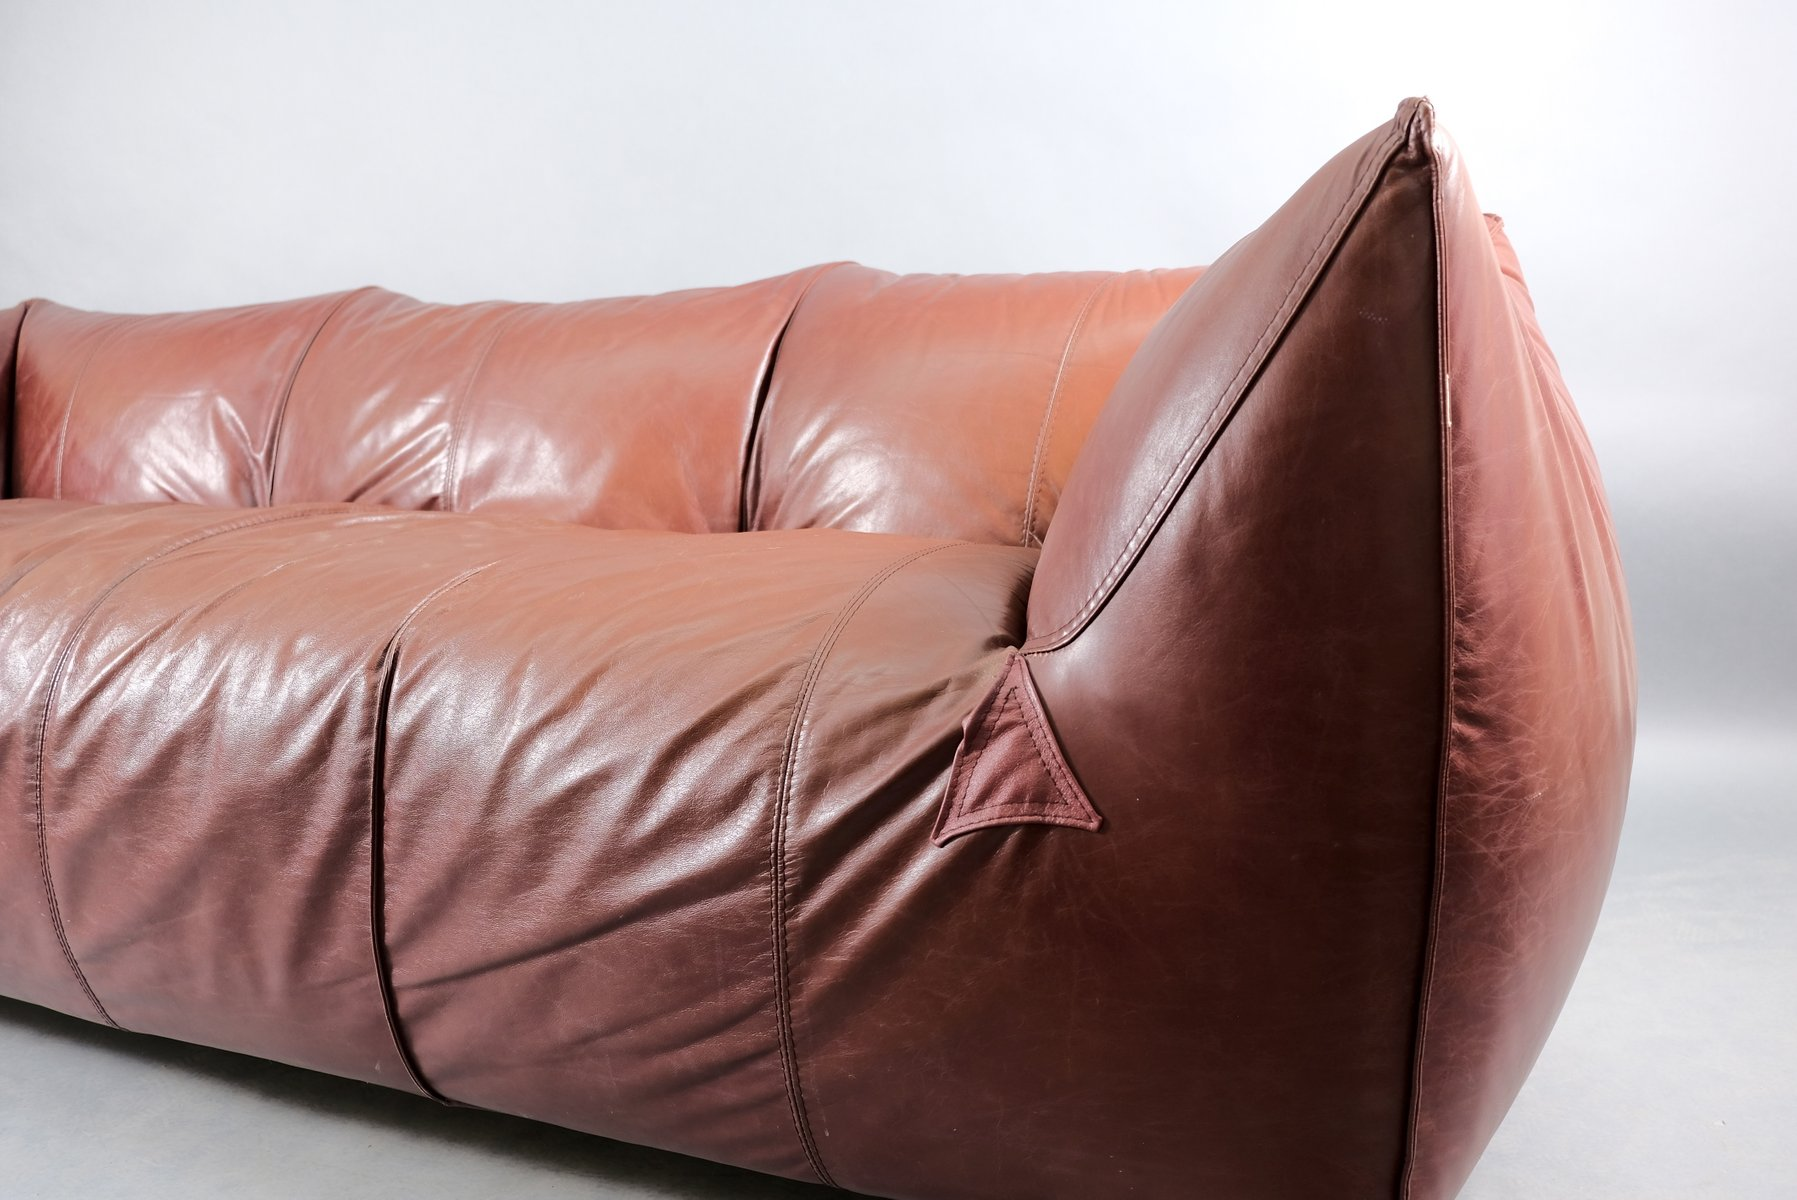 Vintage Leather 3-Seater Model Le Bambole Sofa by Mario Bellini for B&B Italia / C&B Italia